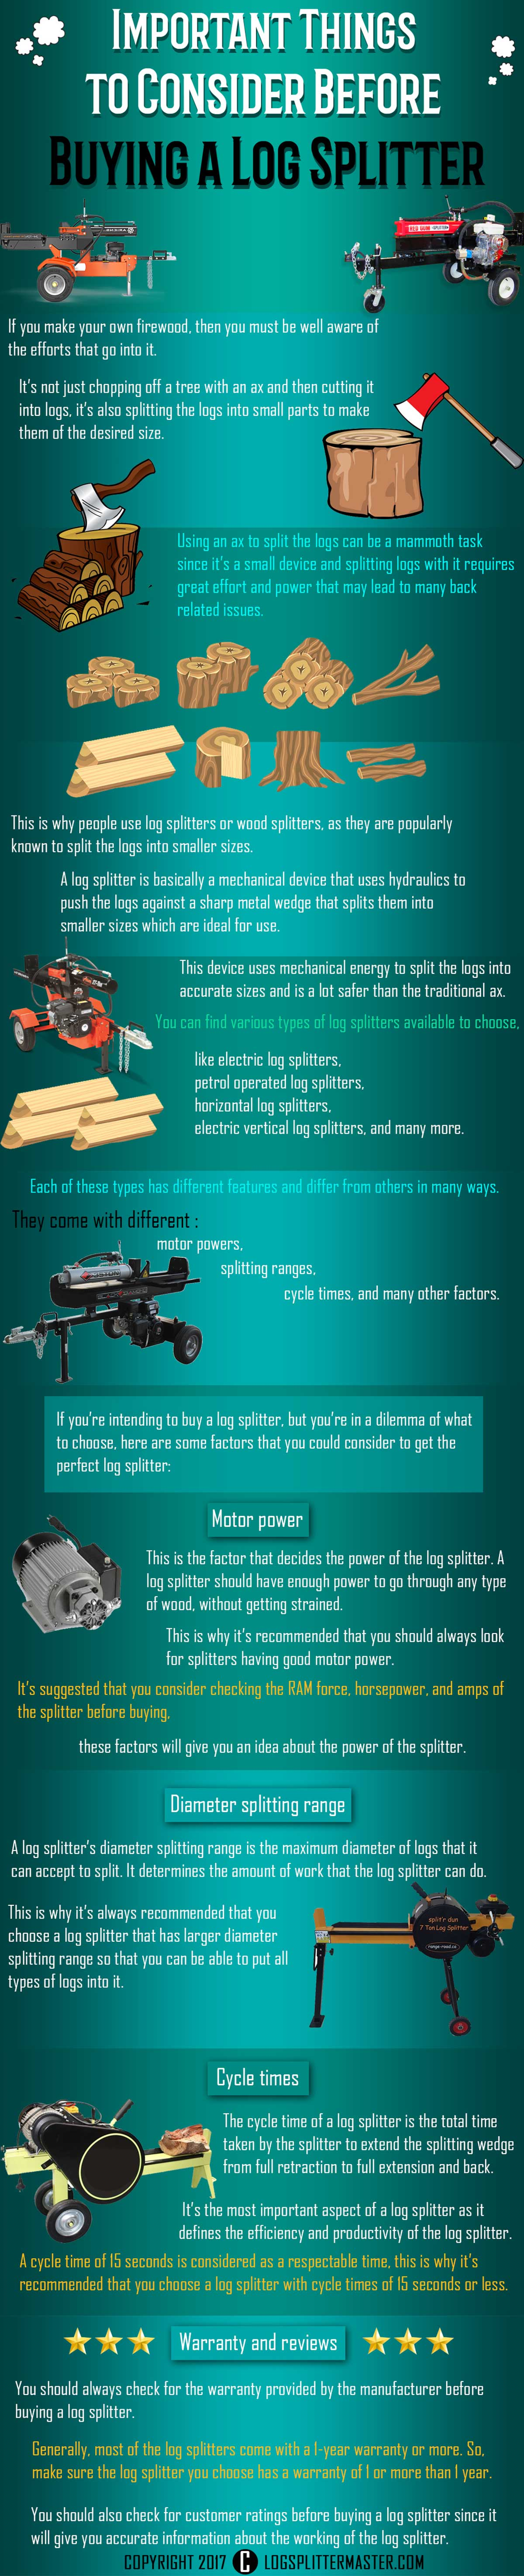 How To Choose The Best Log Splitter For Your Needs - Infographic